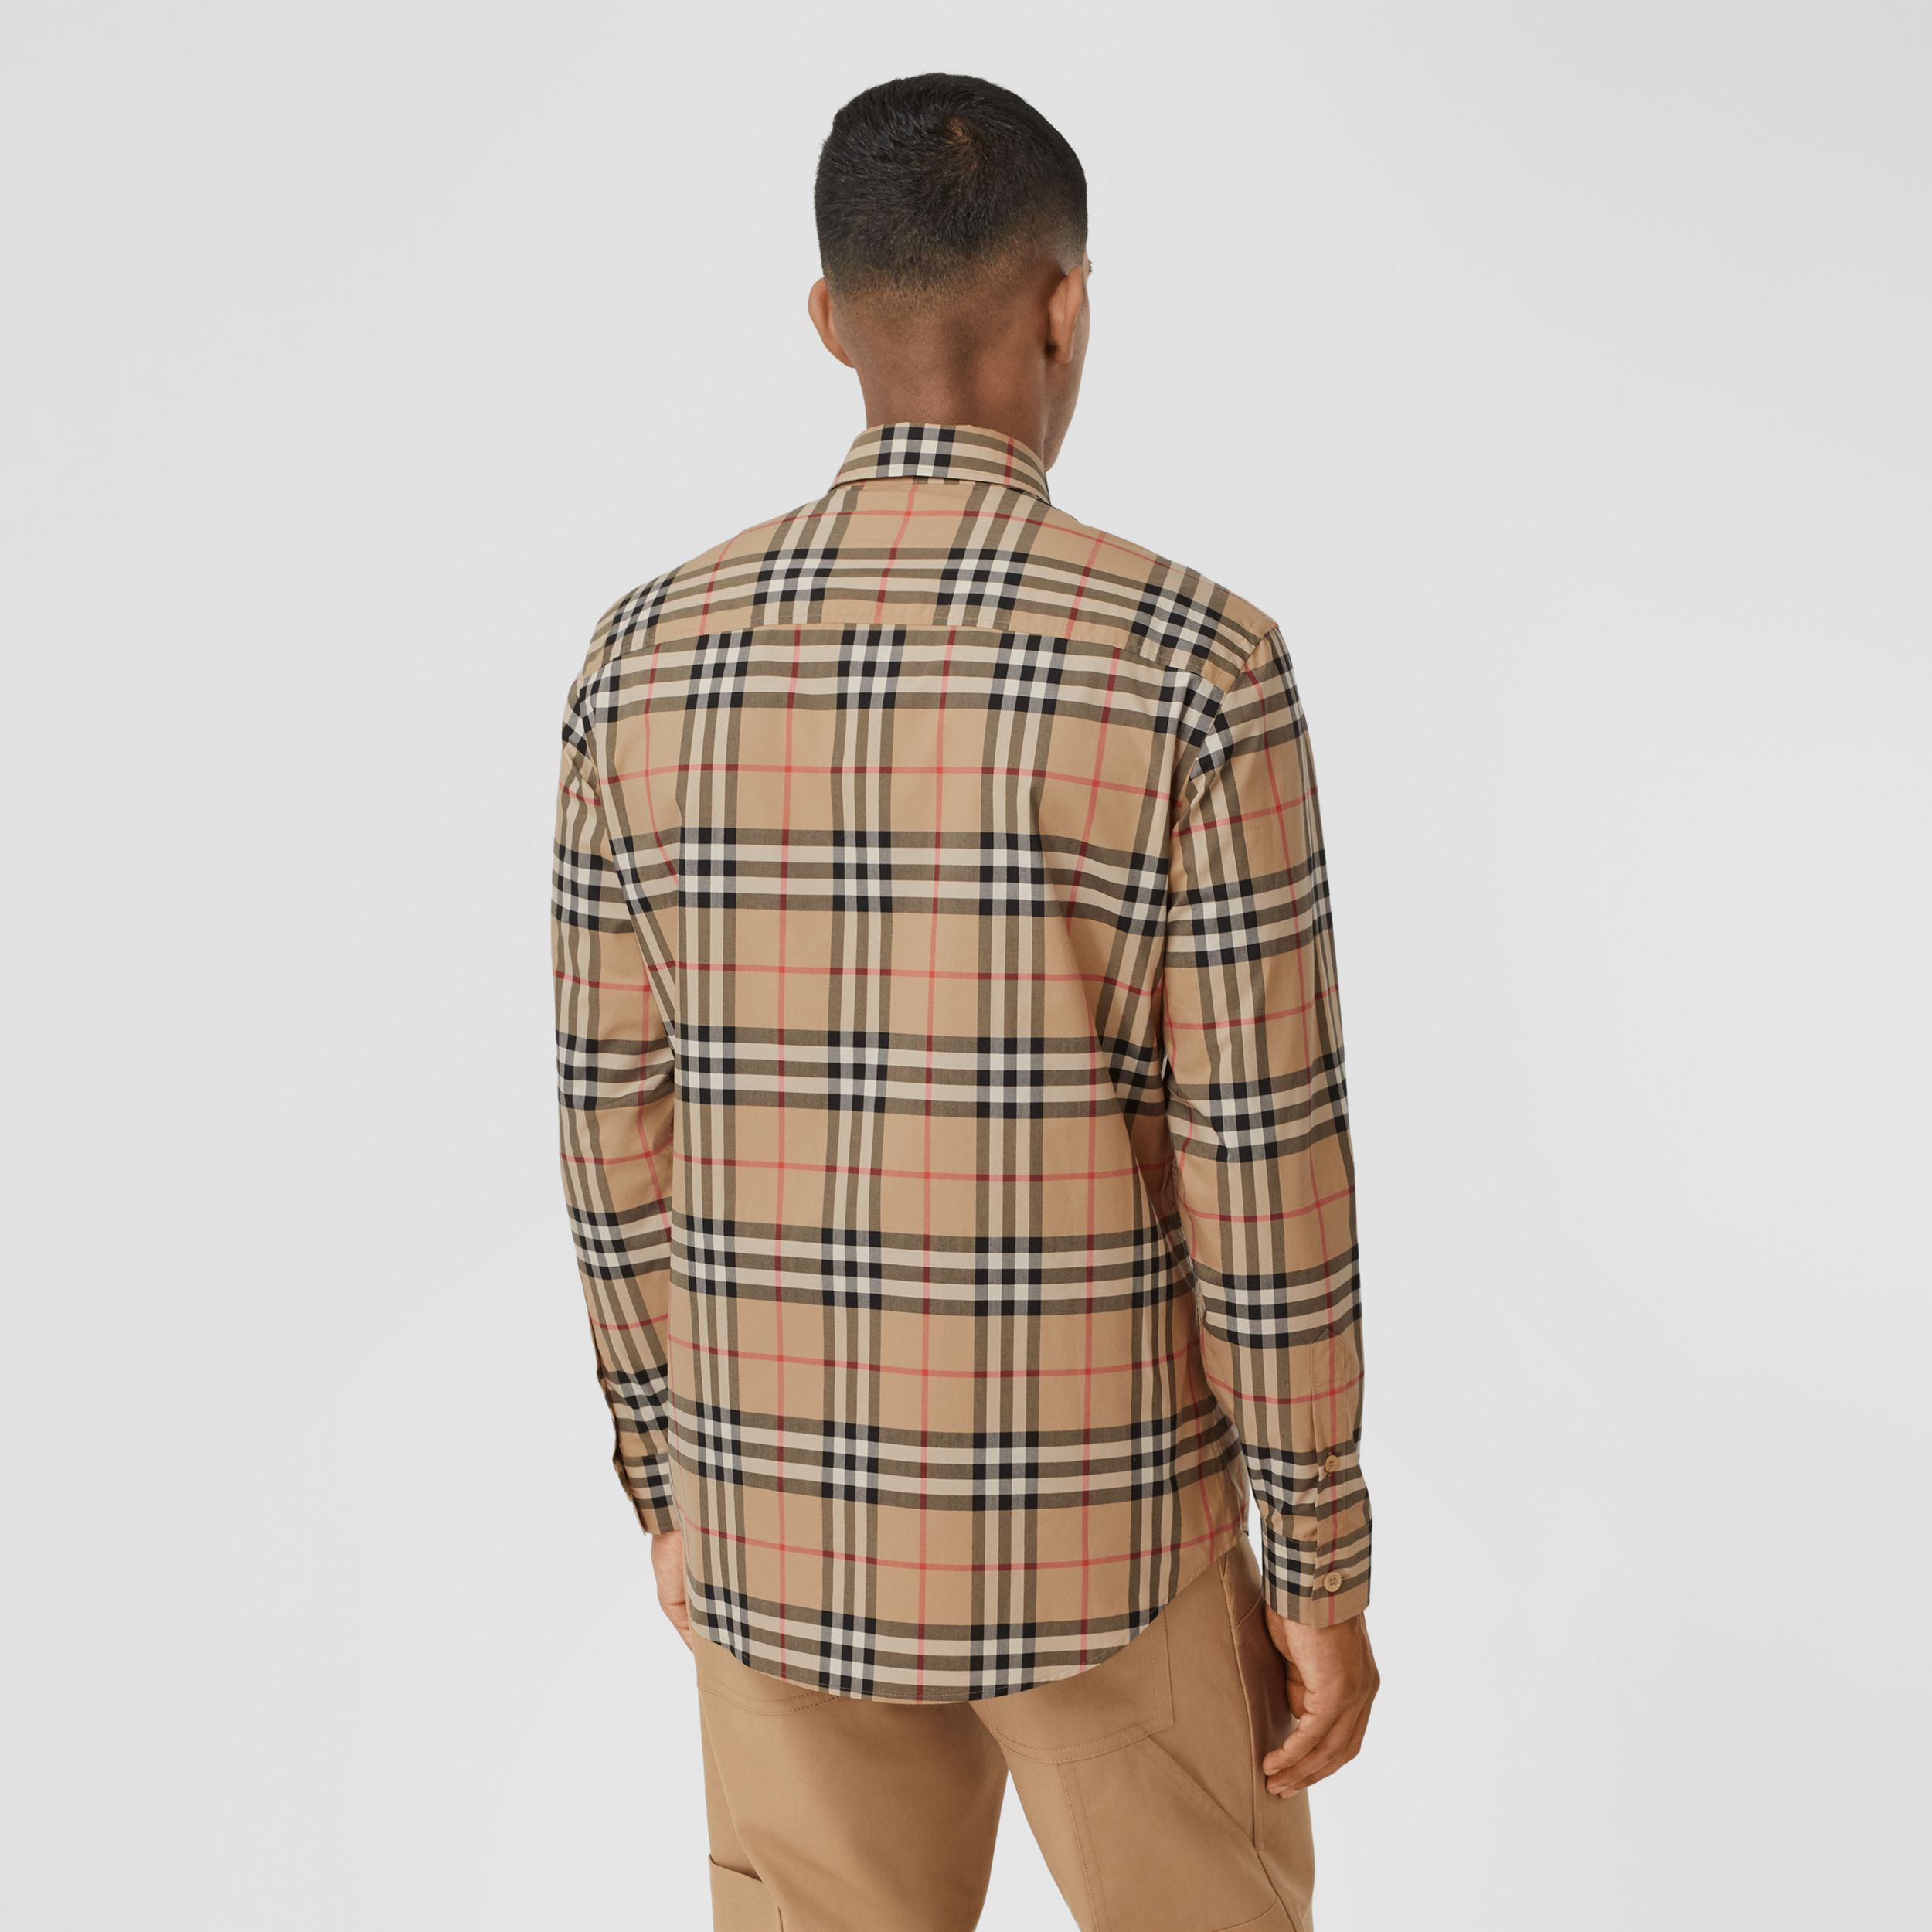 Logo Print Vintage Check Cotton Poplin Shirt in Archive Beige - Men | Burberry - 3